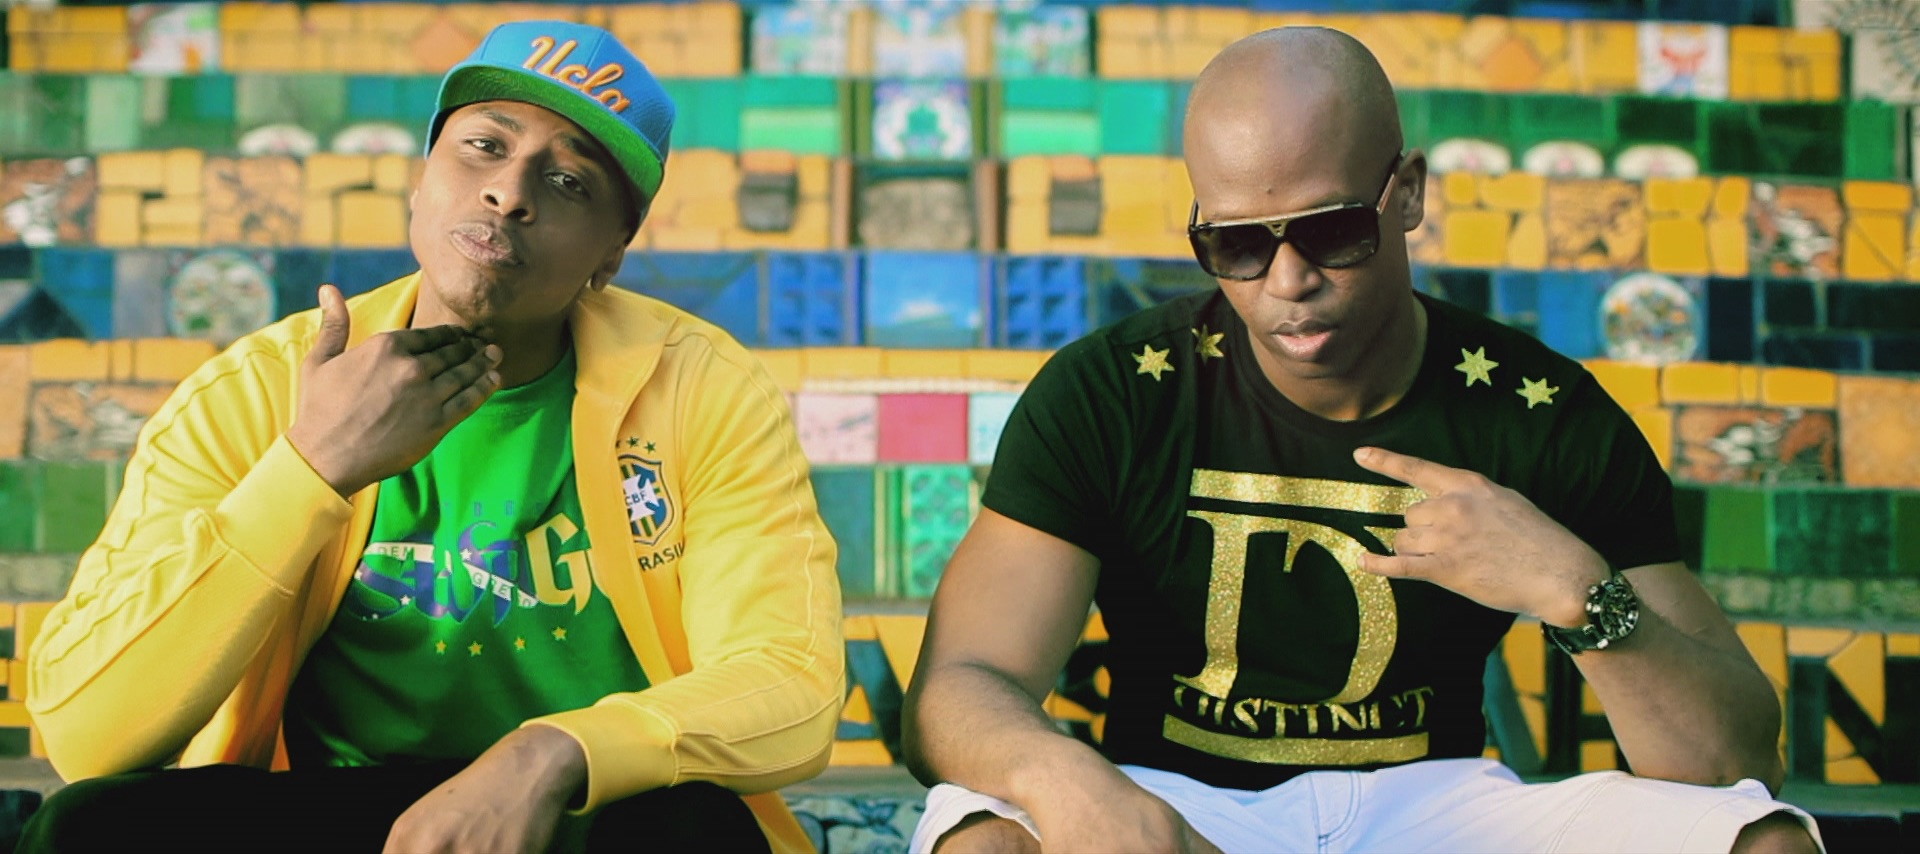 ROHFF ETOILES SULTAN 4 TÉLÉCHARGER